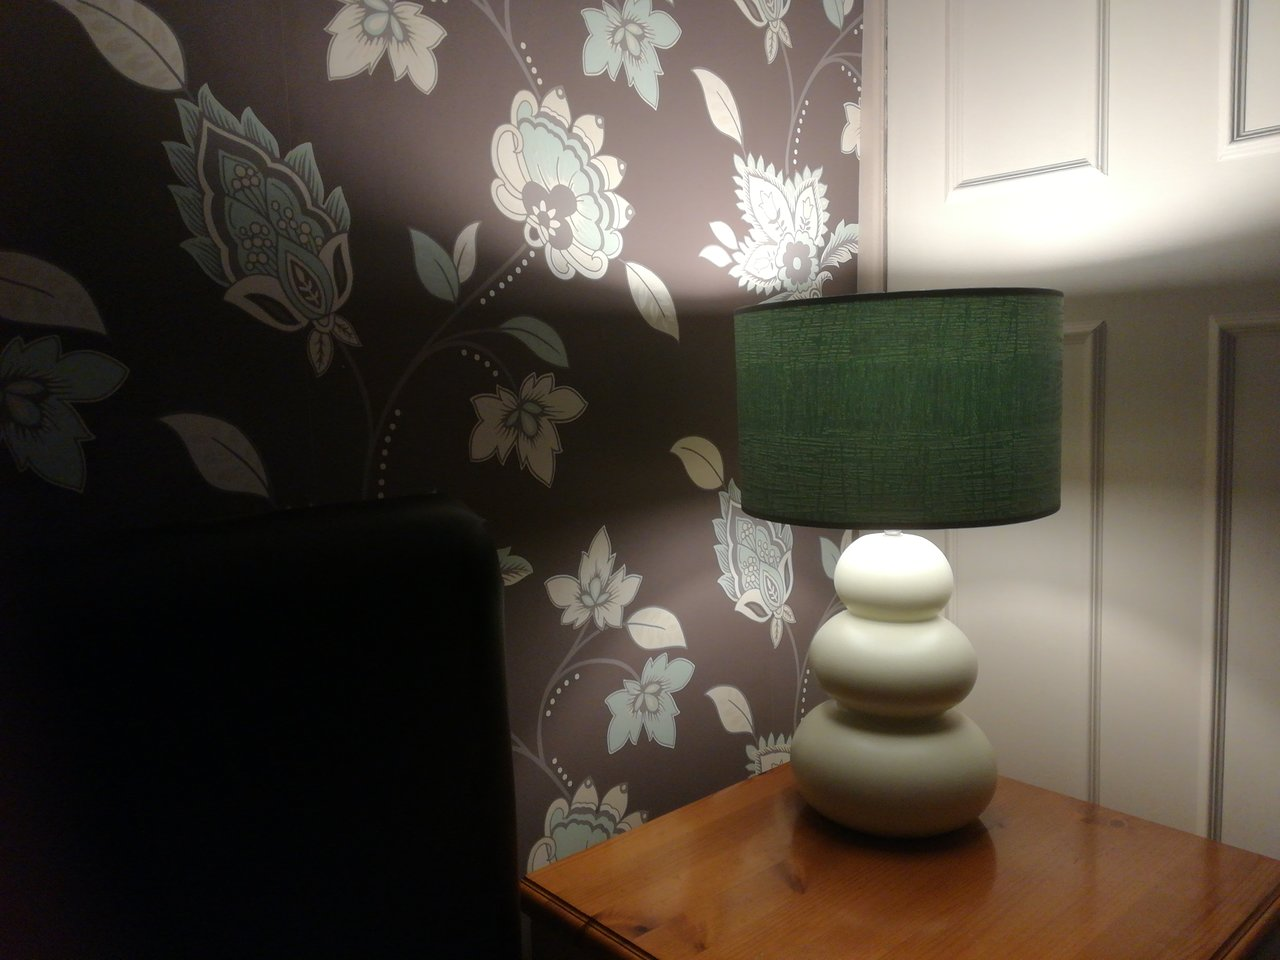 notley house the coach house updated 2019 prices guest house rh tripadvisor com